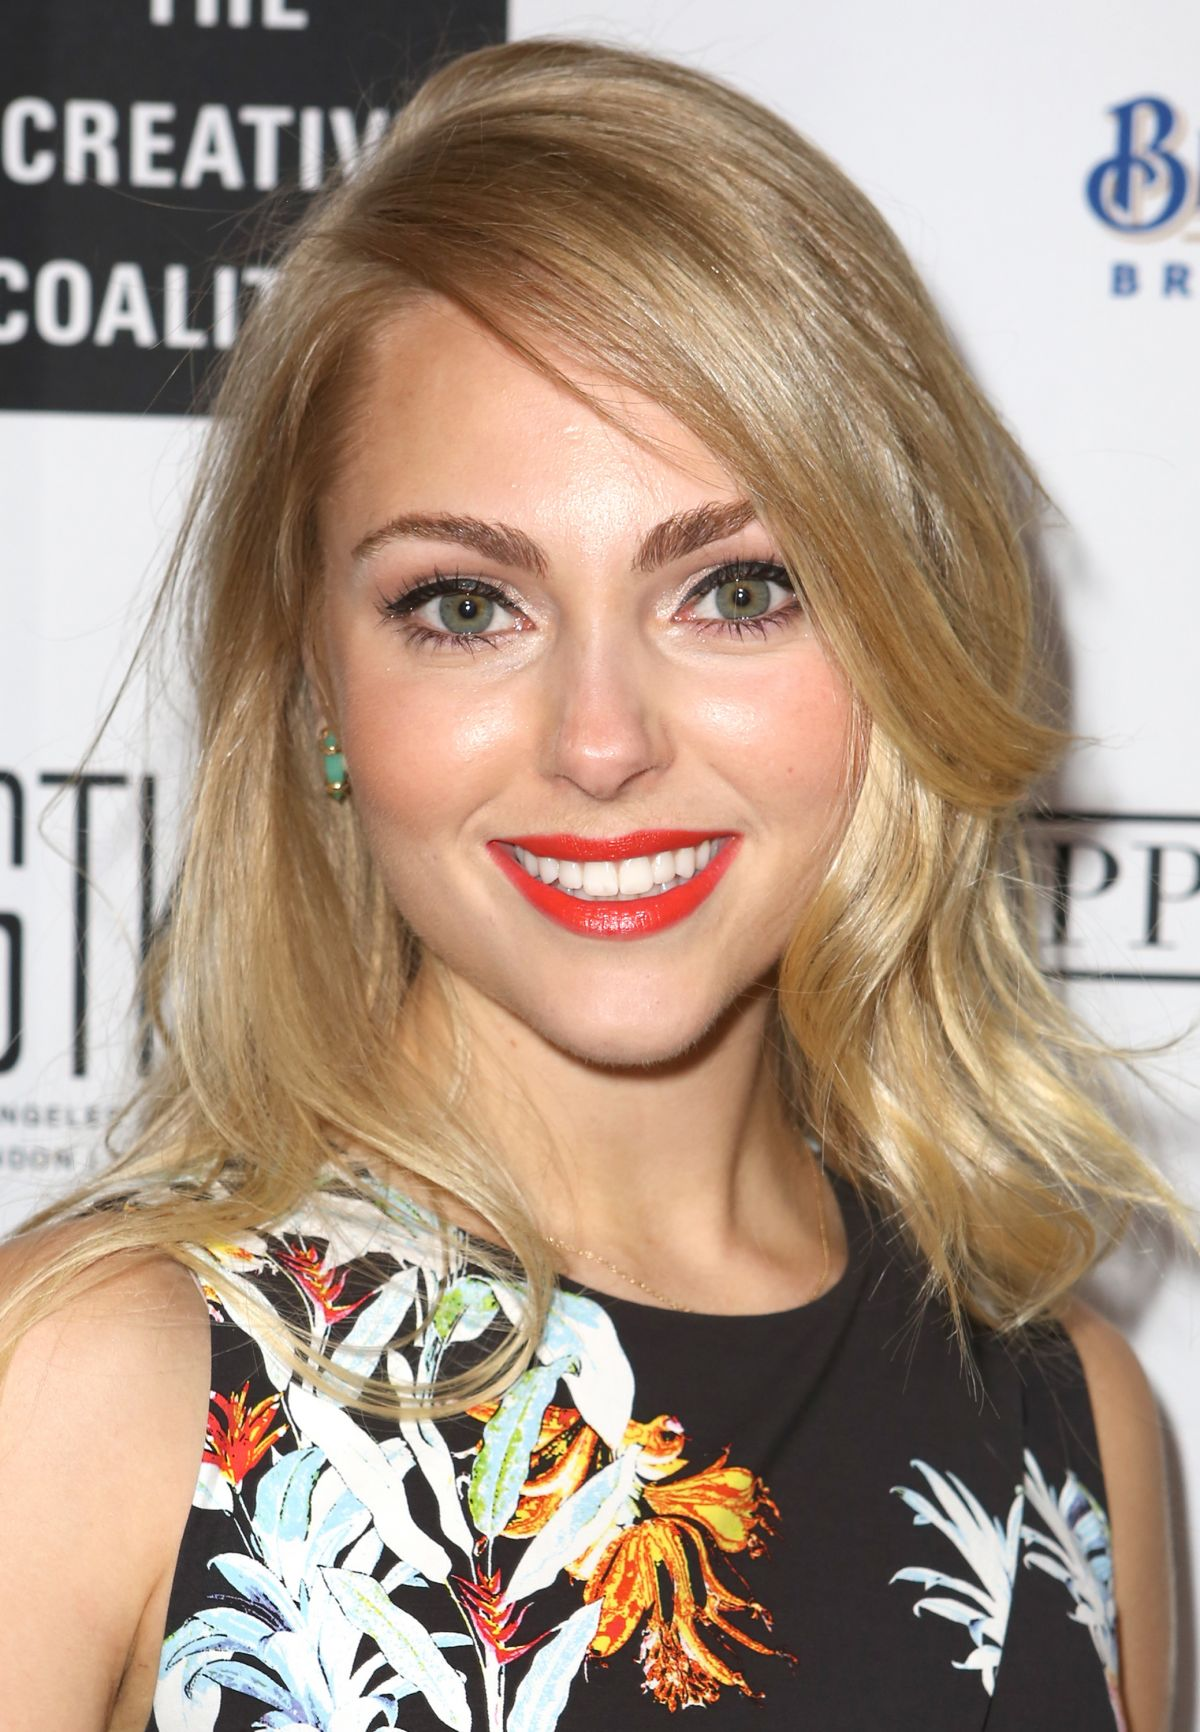 ANNSOPHIA ROBB at Creative Coalition Gala Benefit Dinner in Washington